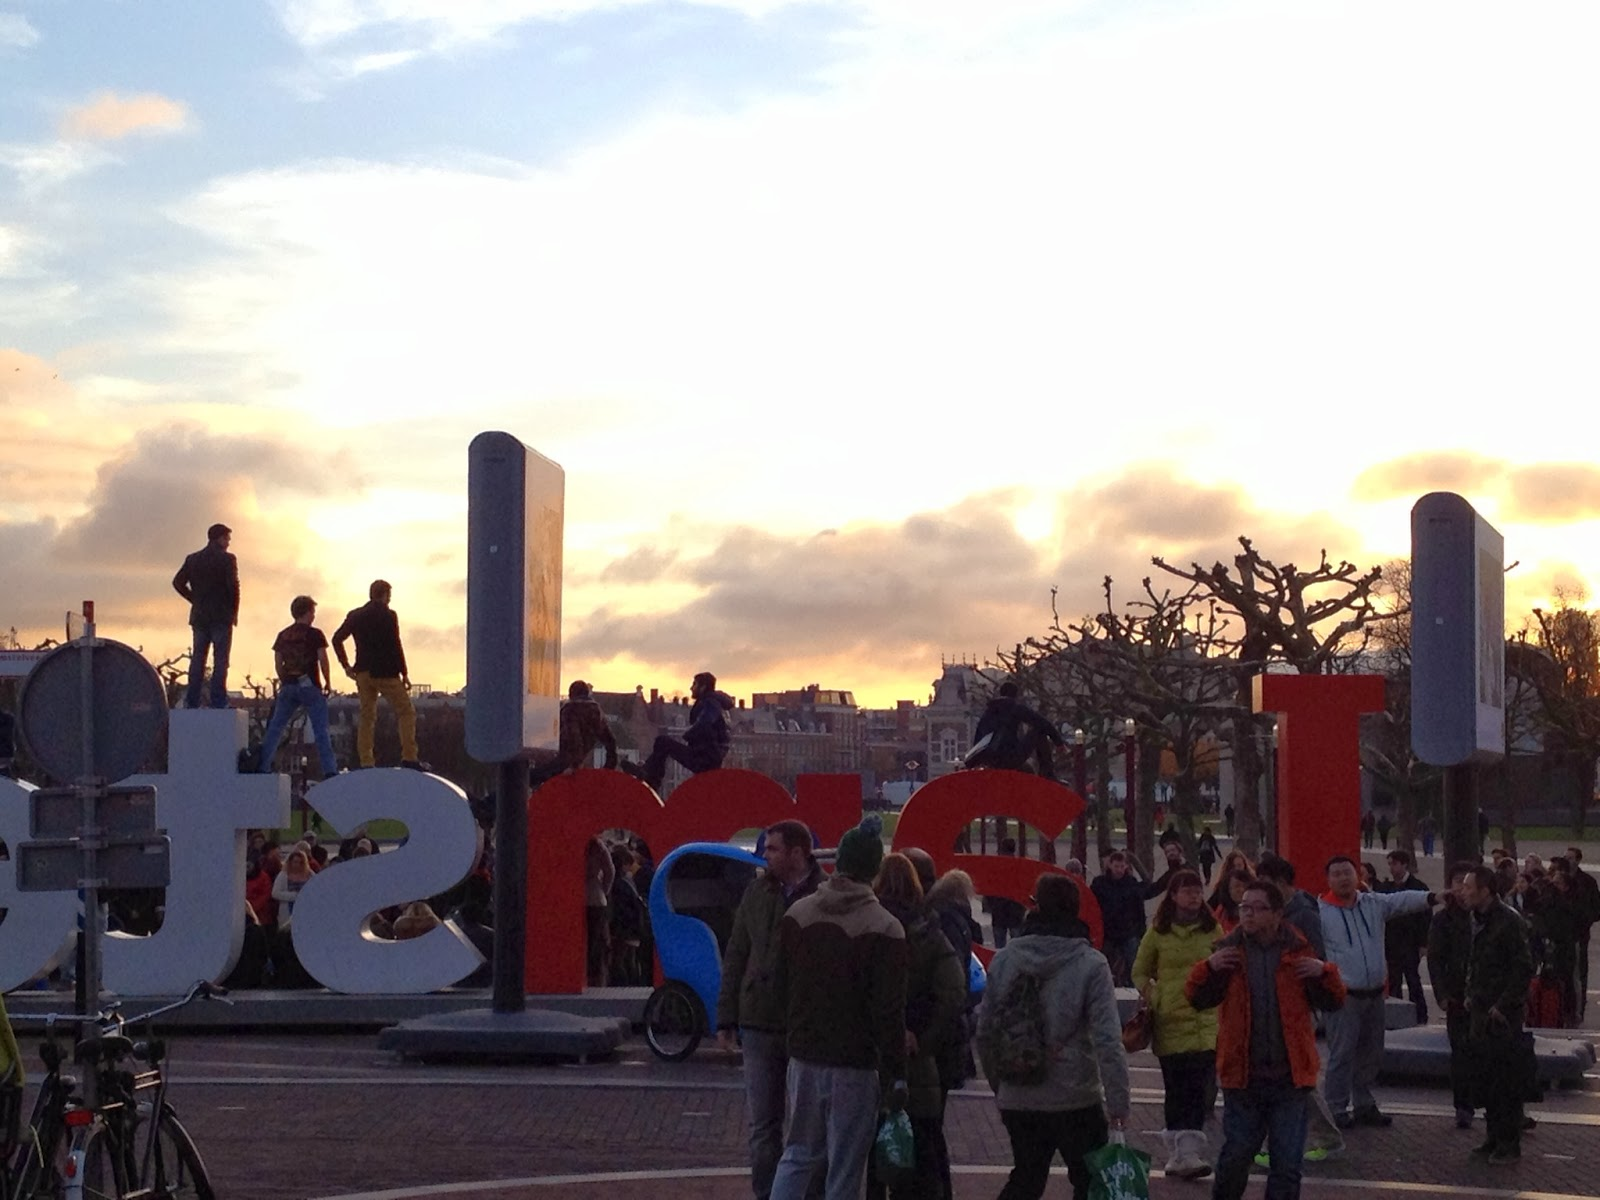 Amsterdam -  People love climbing on the I amsterdam letters